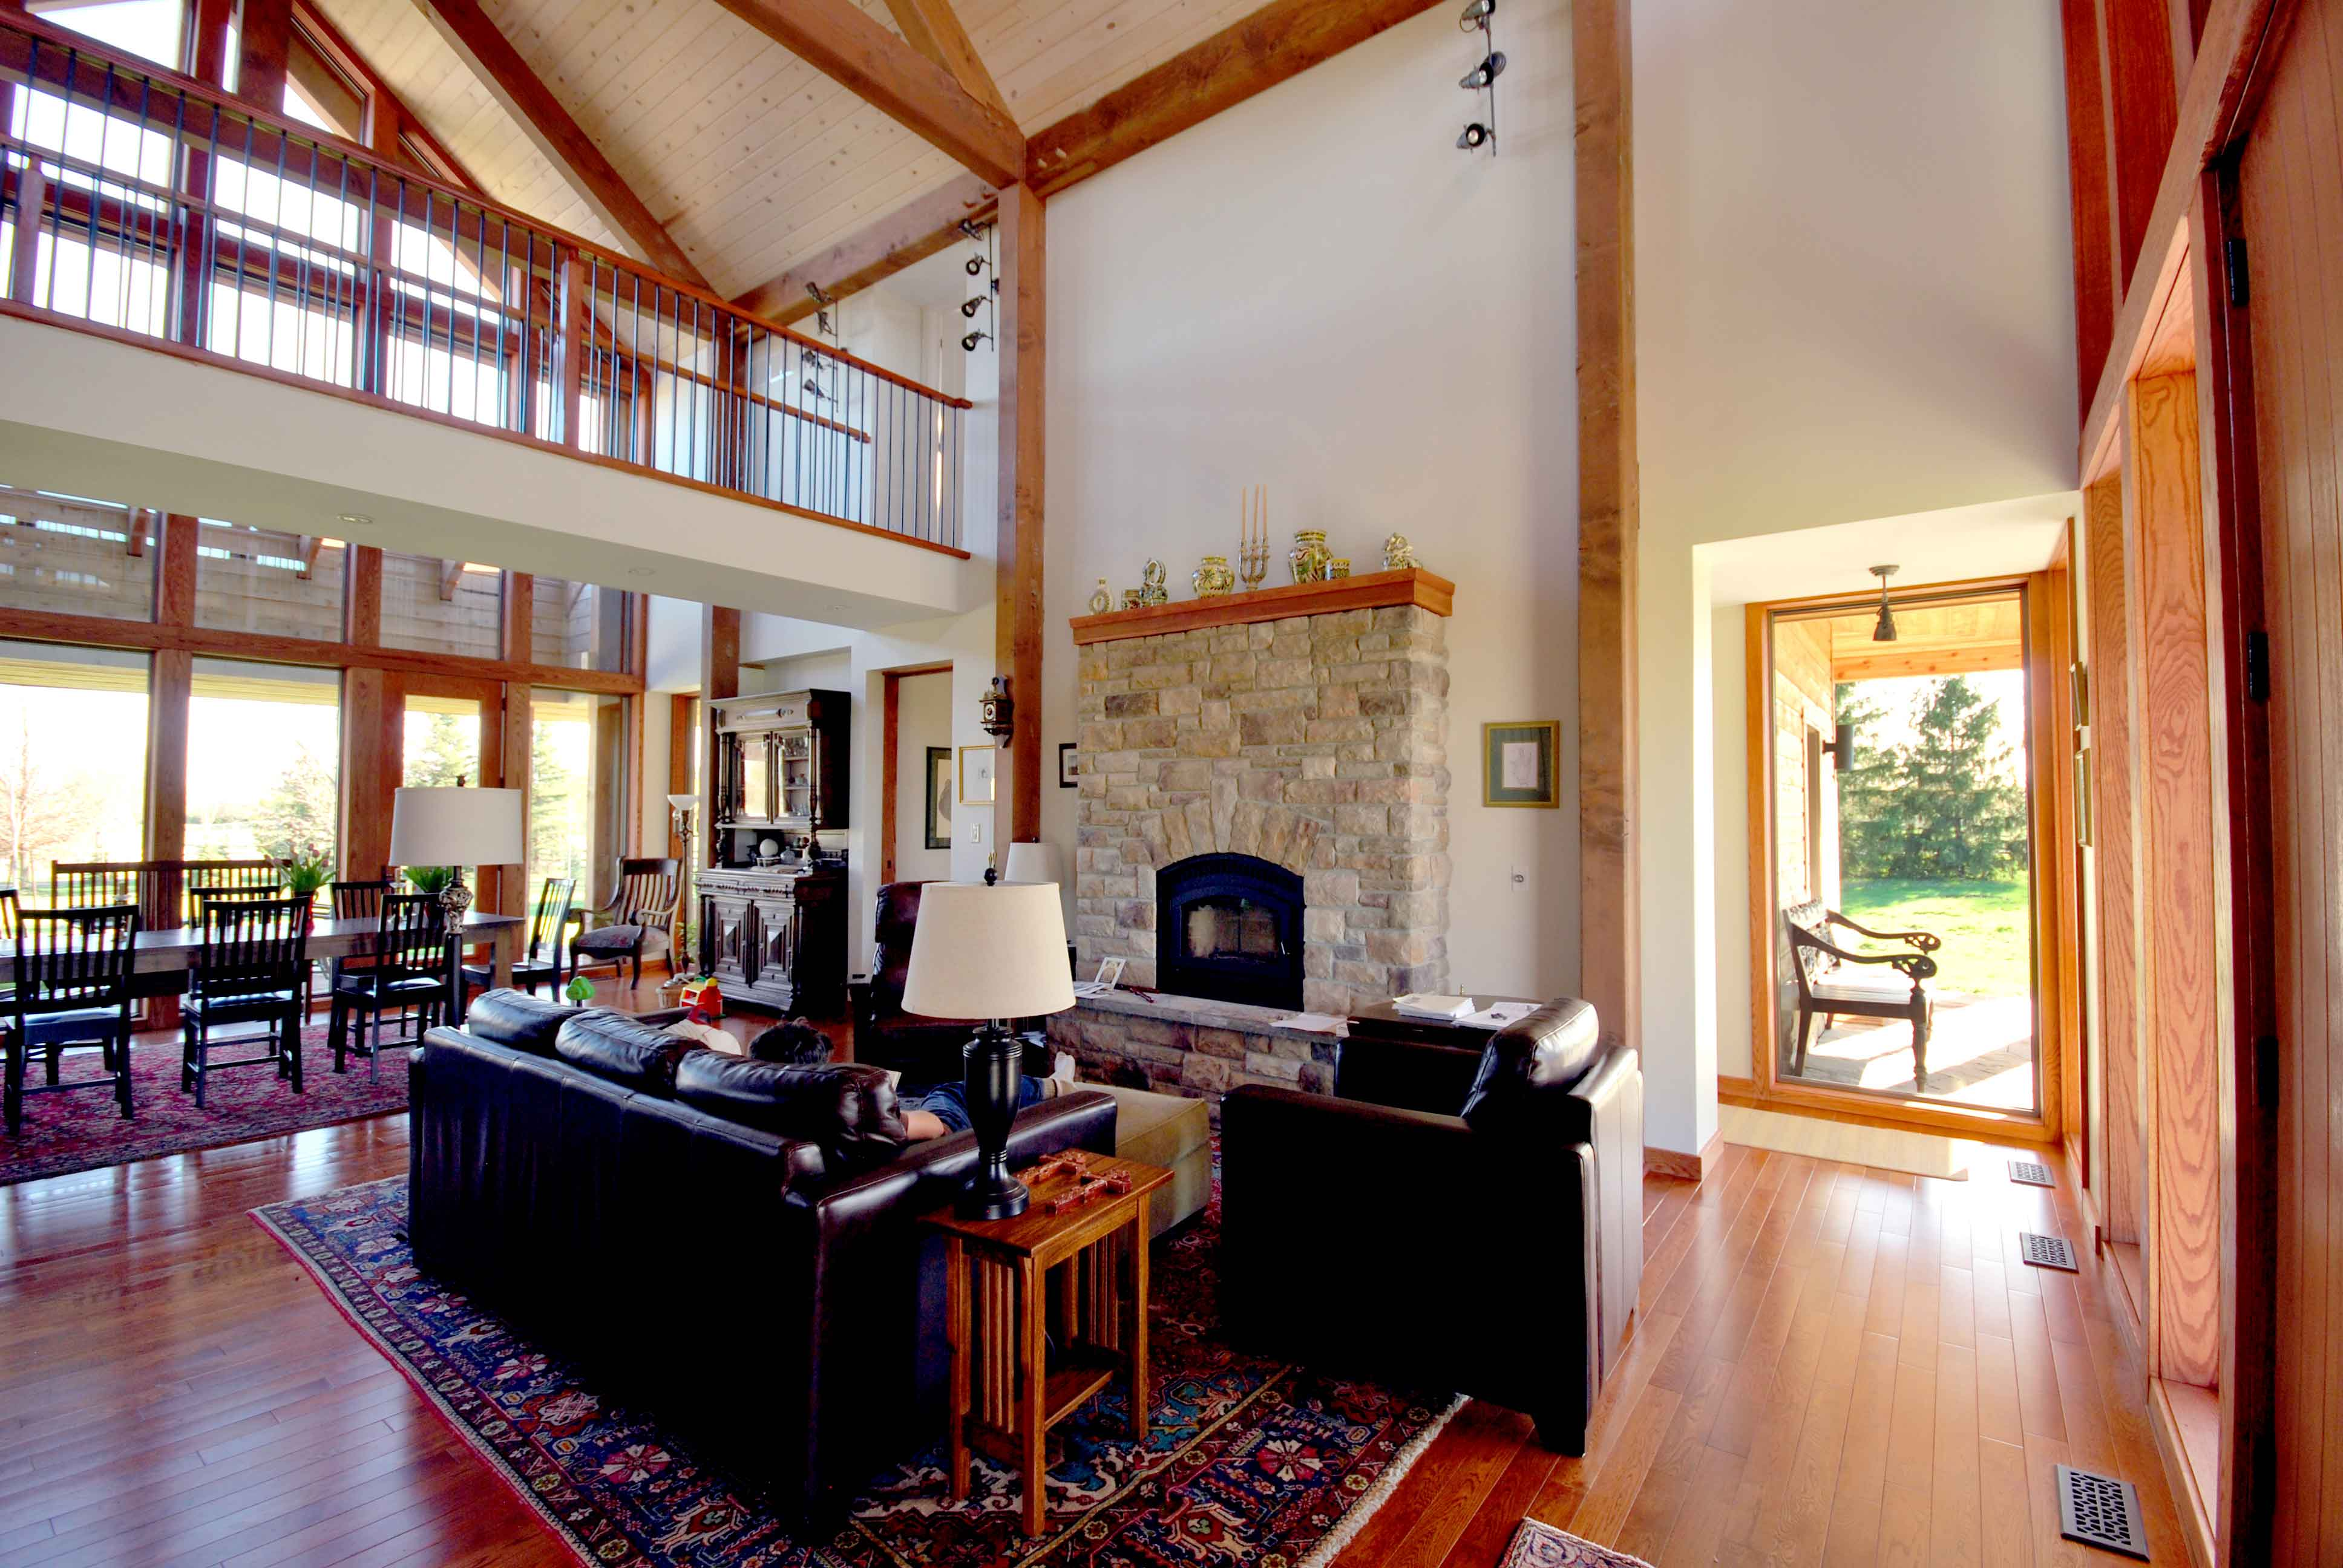 How To Become An Interior Designer In Ontario Latest